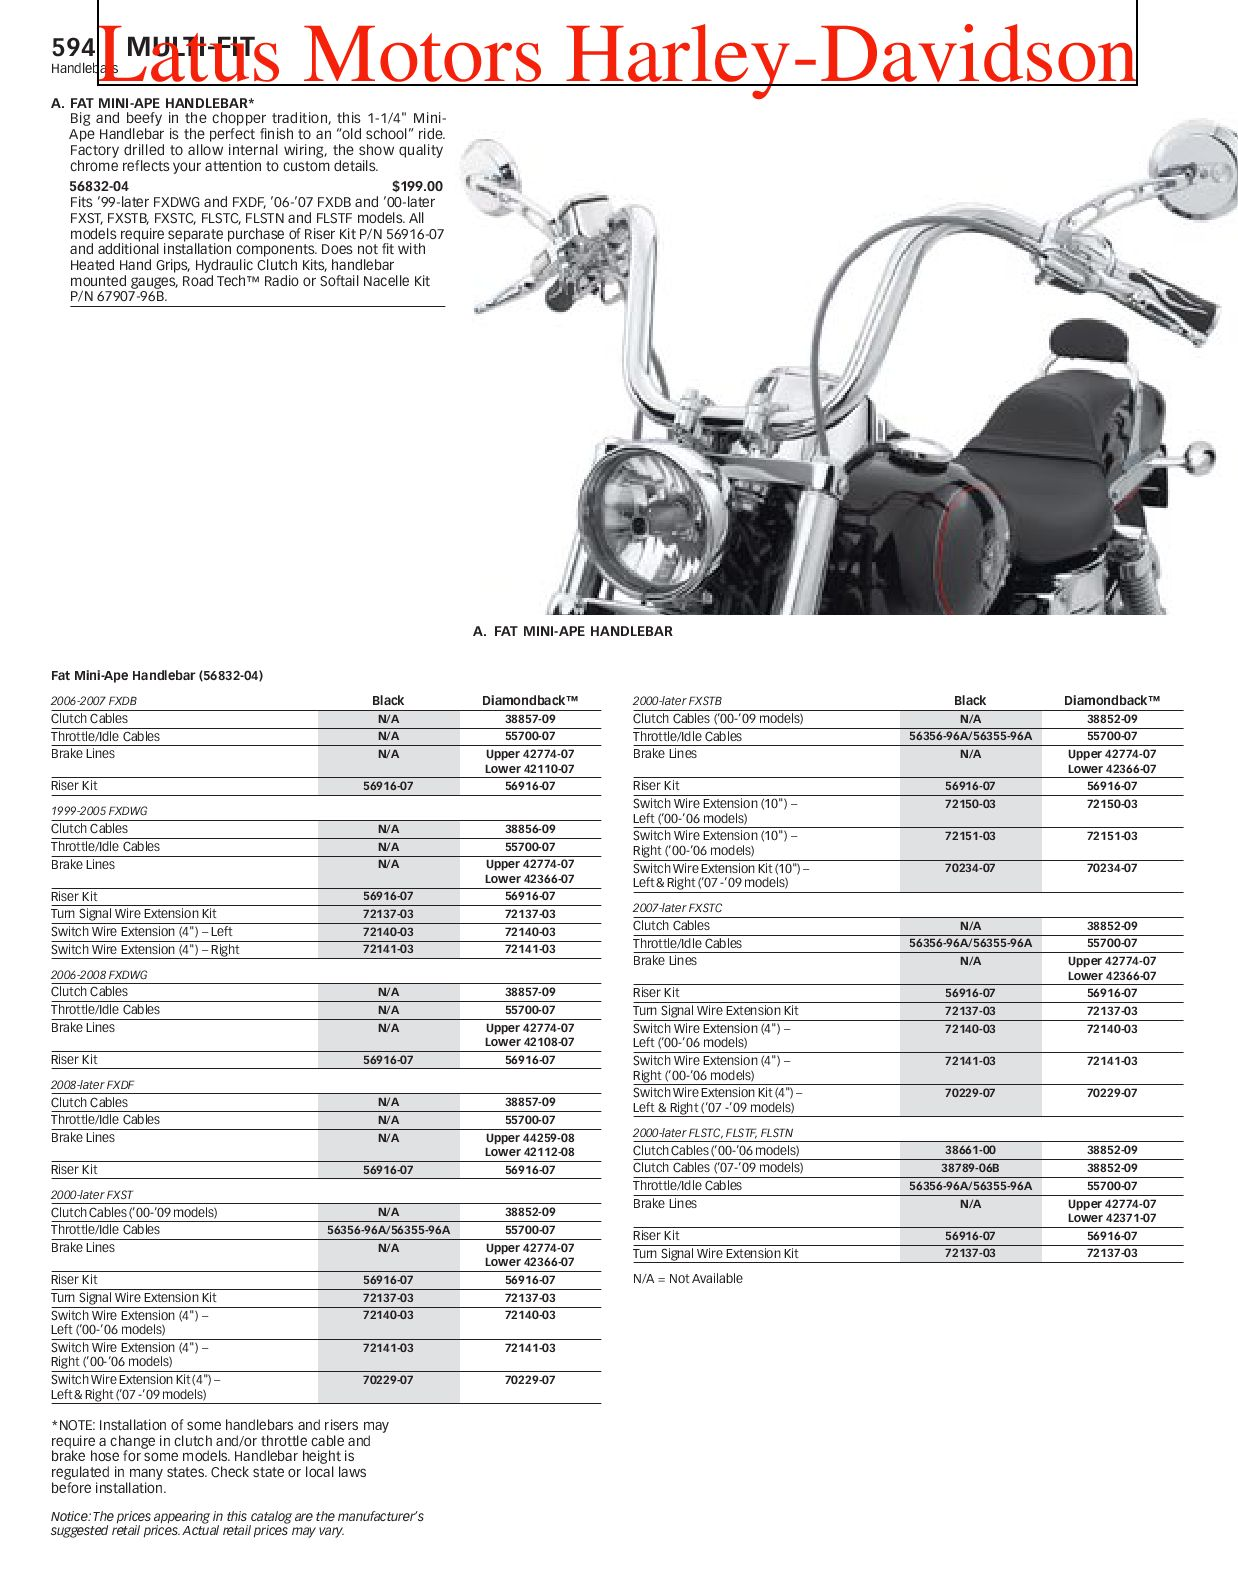 Harley-Davidson Multi Fit Parts and Accessories Catalog by Harley